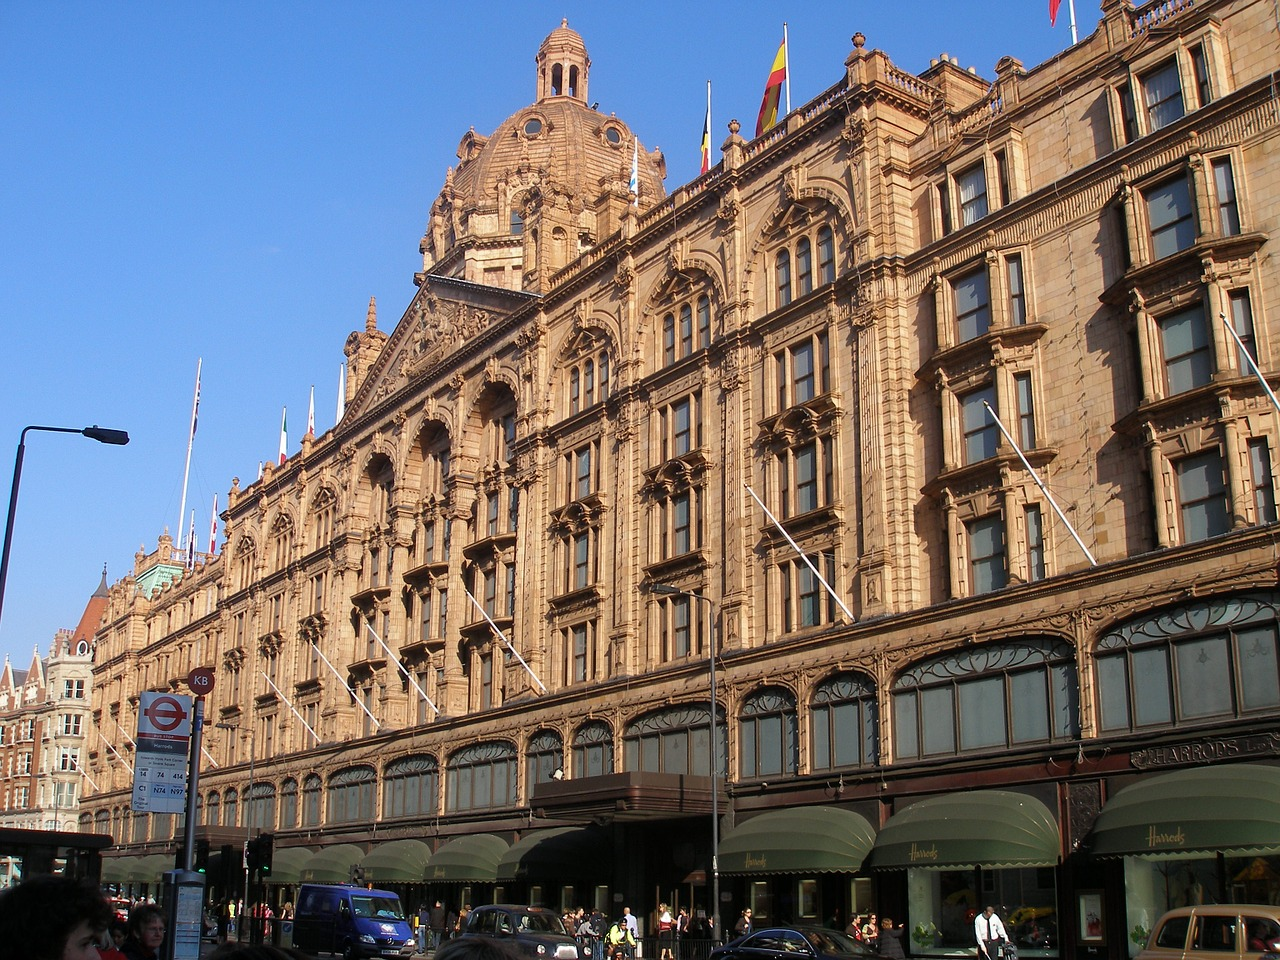 harrods department store london architecture free photo